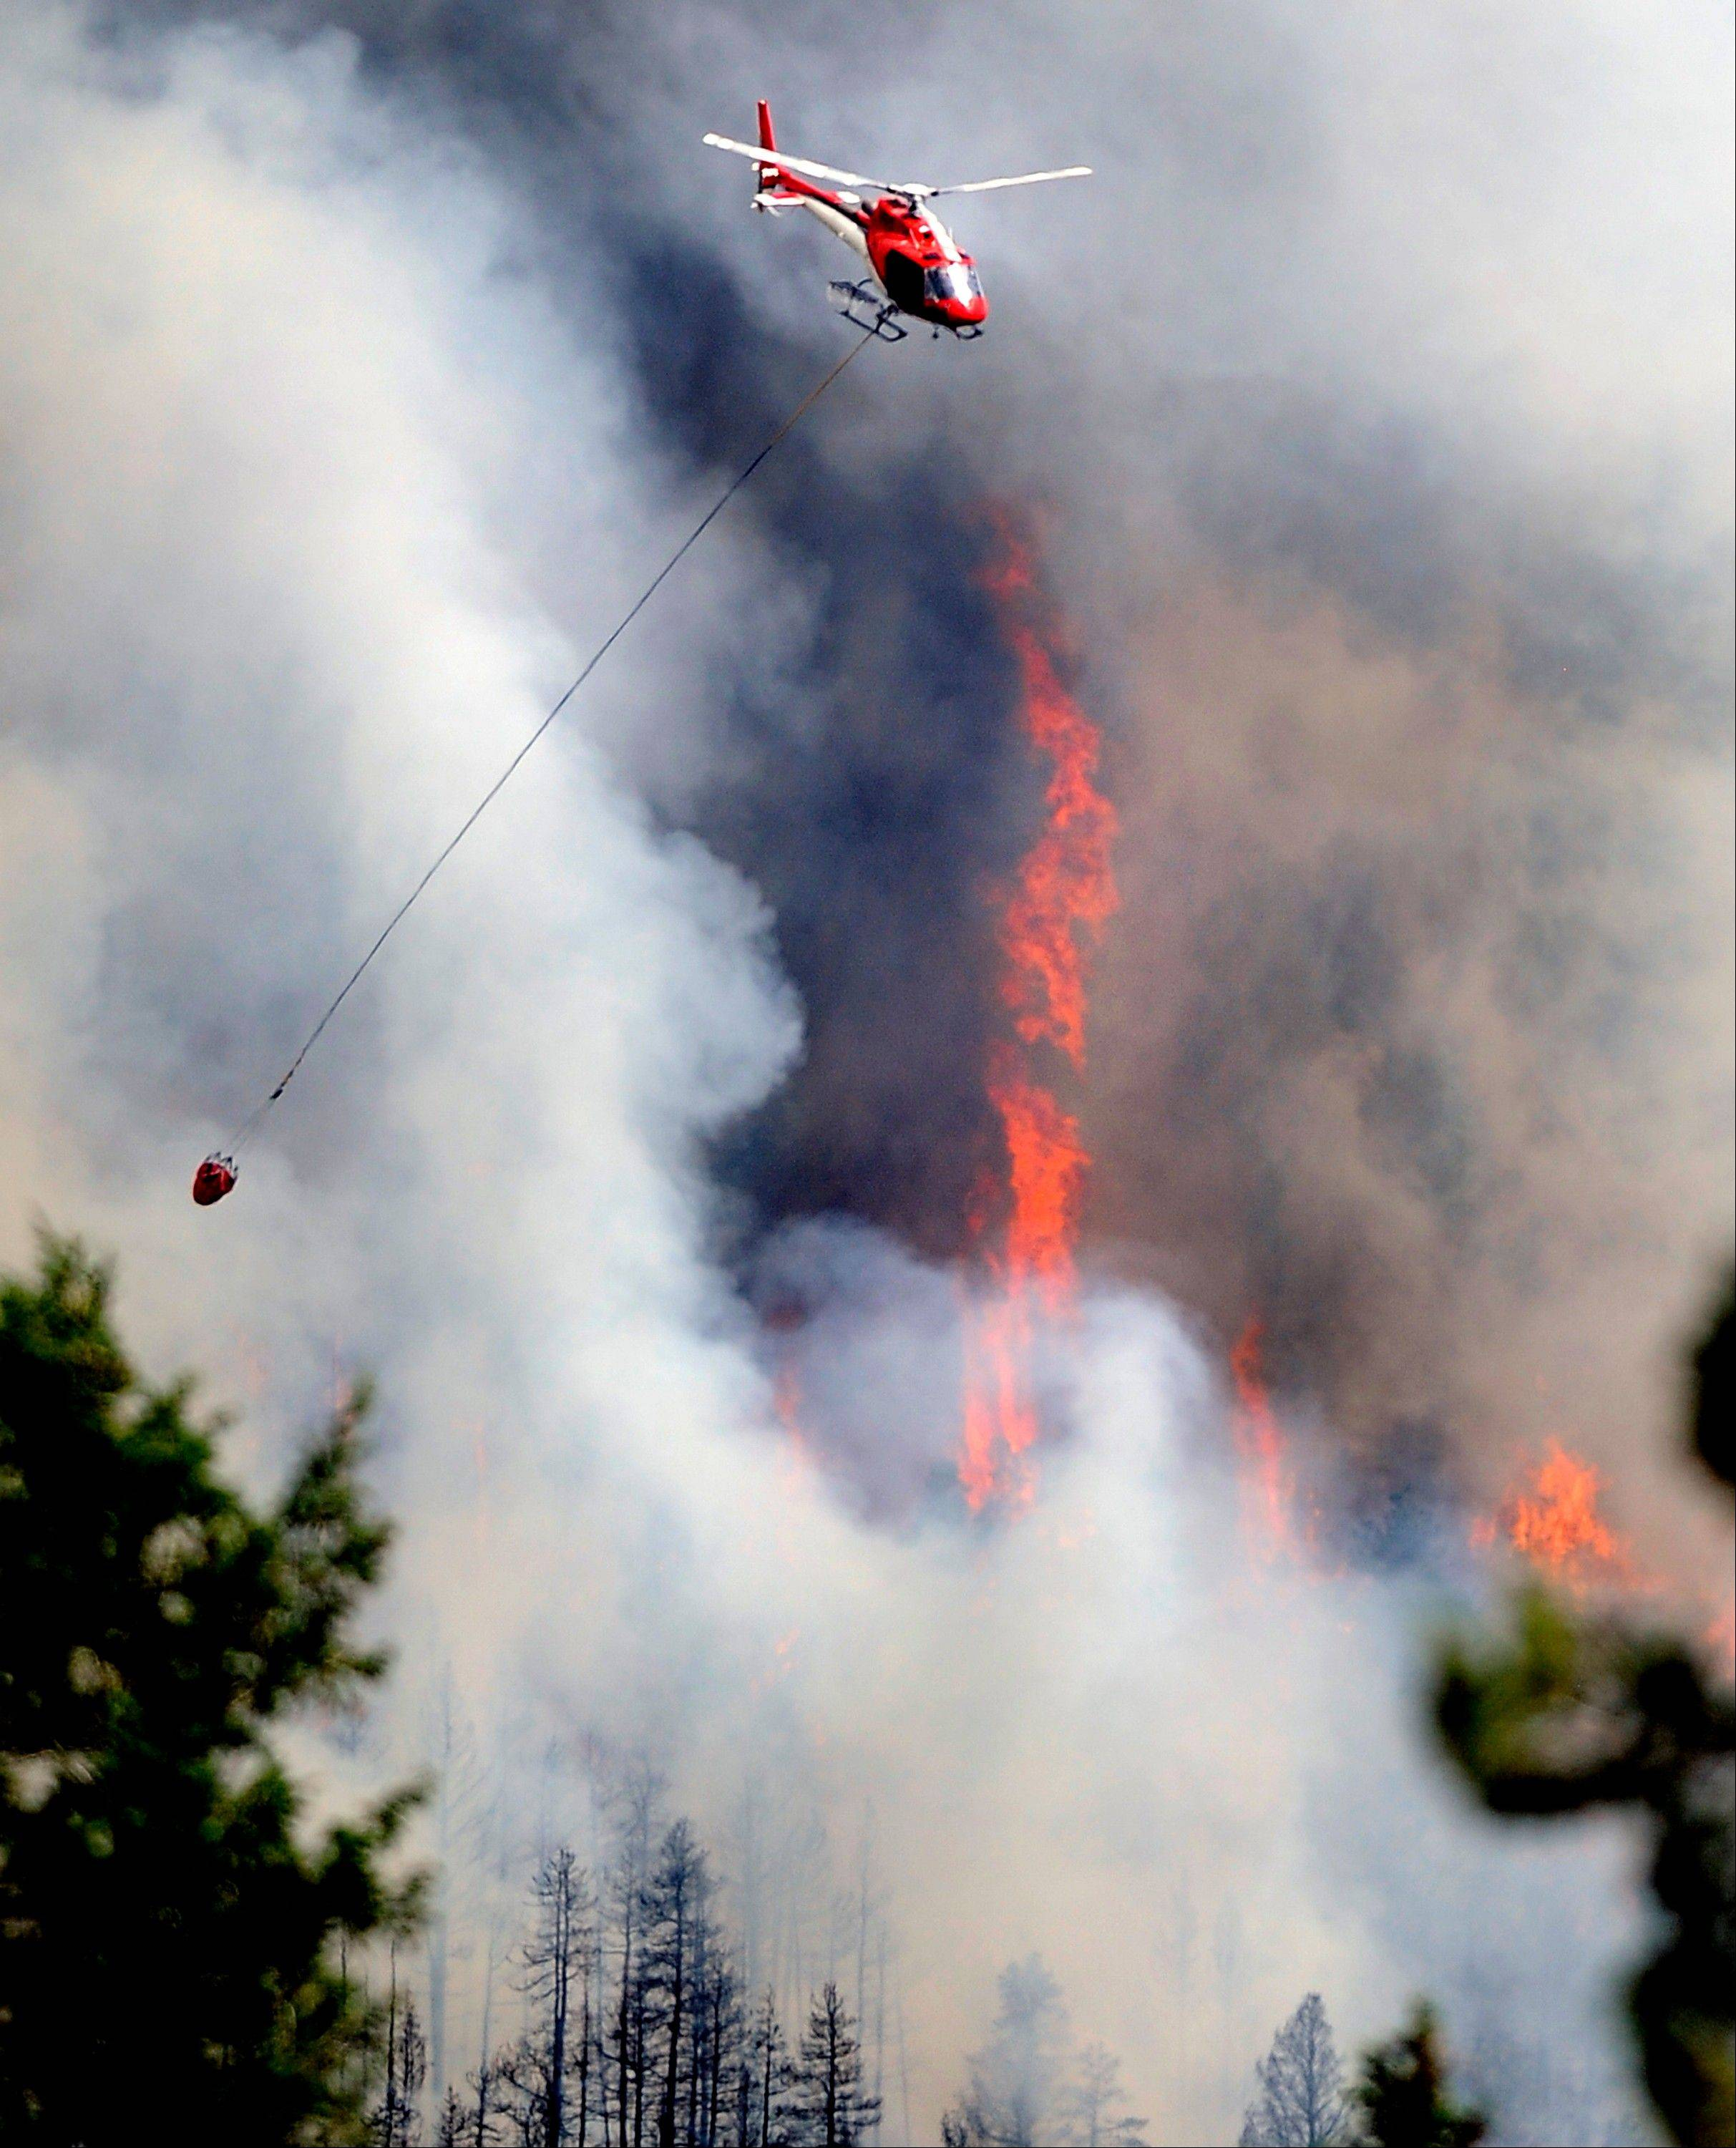 A firefighting helicopter flies above the Flagstaff fire on Tuesday, June 26, 2012 west of Boulder, Colo. Colorado has endured nearly a week of 100-plus-degree days and low humidity, sapping moisture from timber and grass, creating a devastating formula for volatile wildfires across the state and punishing conditions for firefighters.